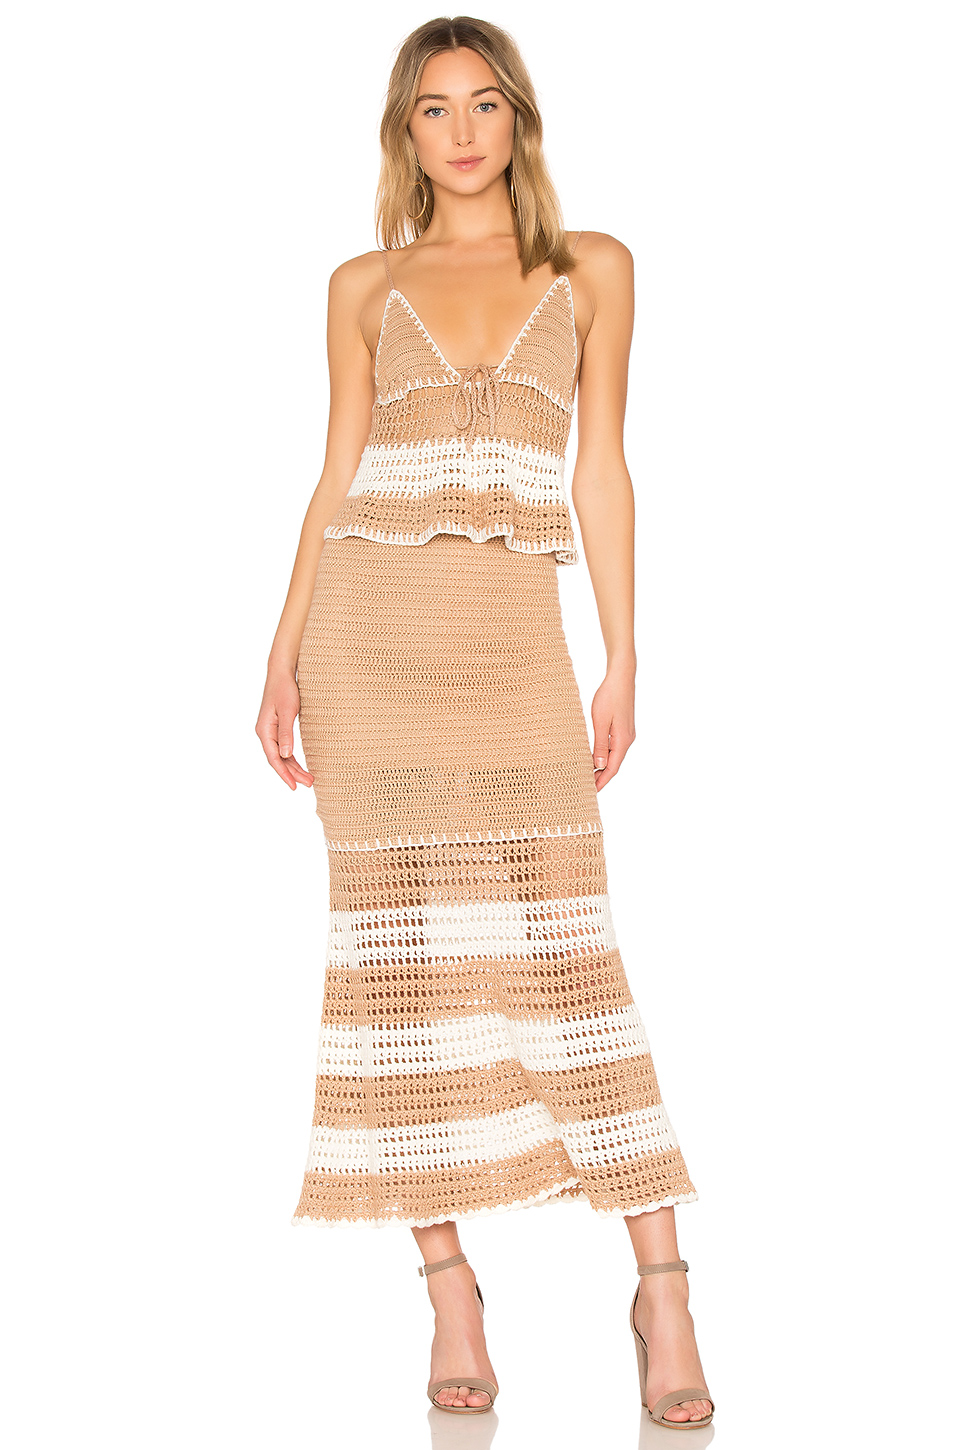 X by NBD Calypso Dress in Almond & White